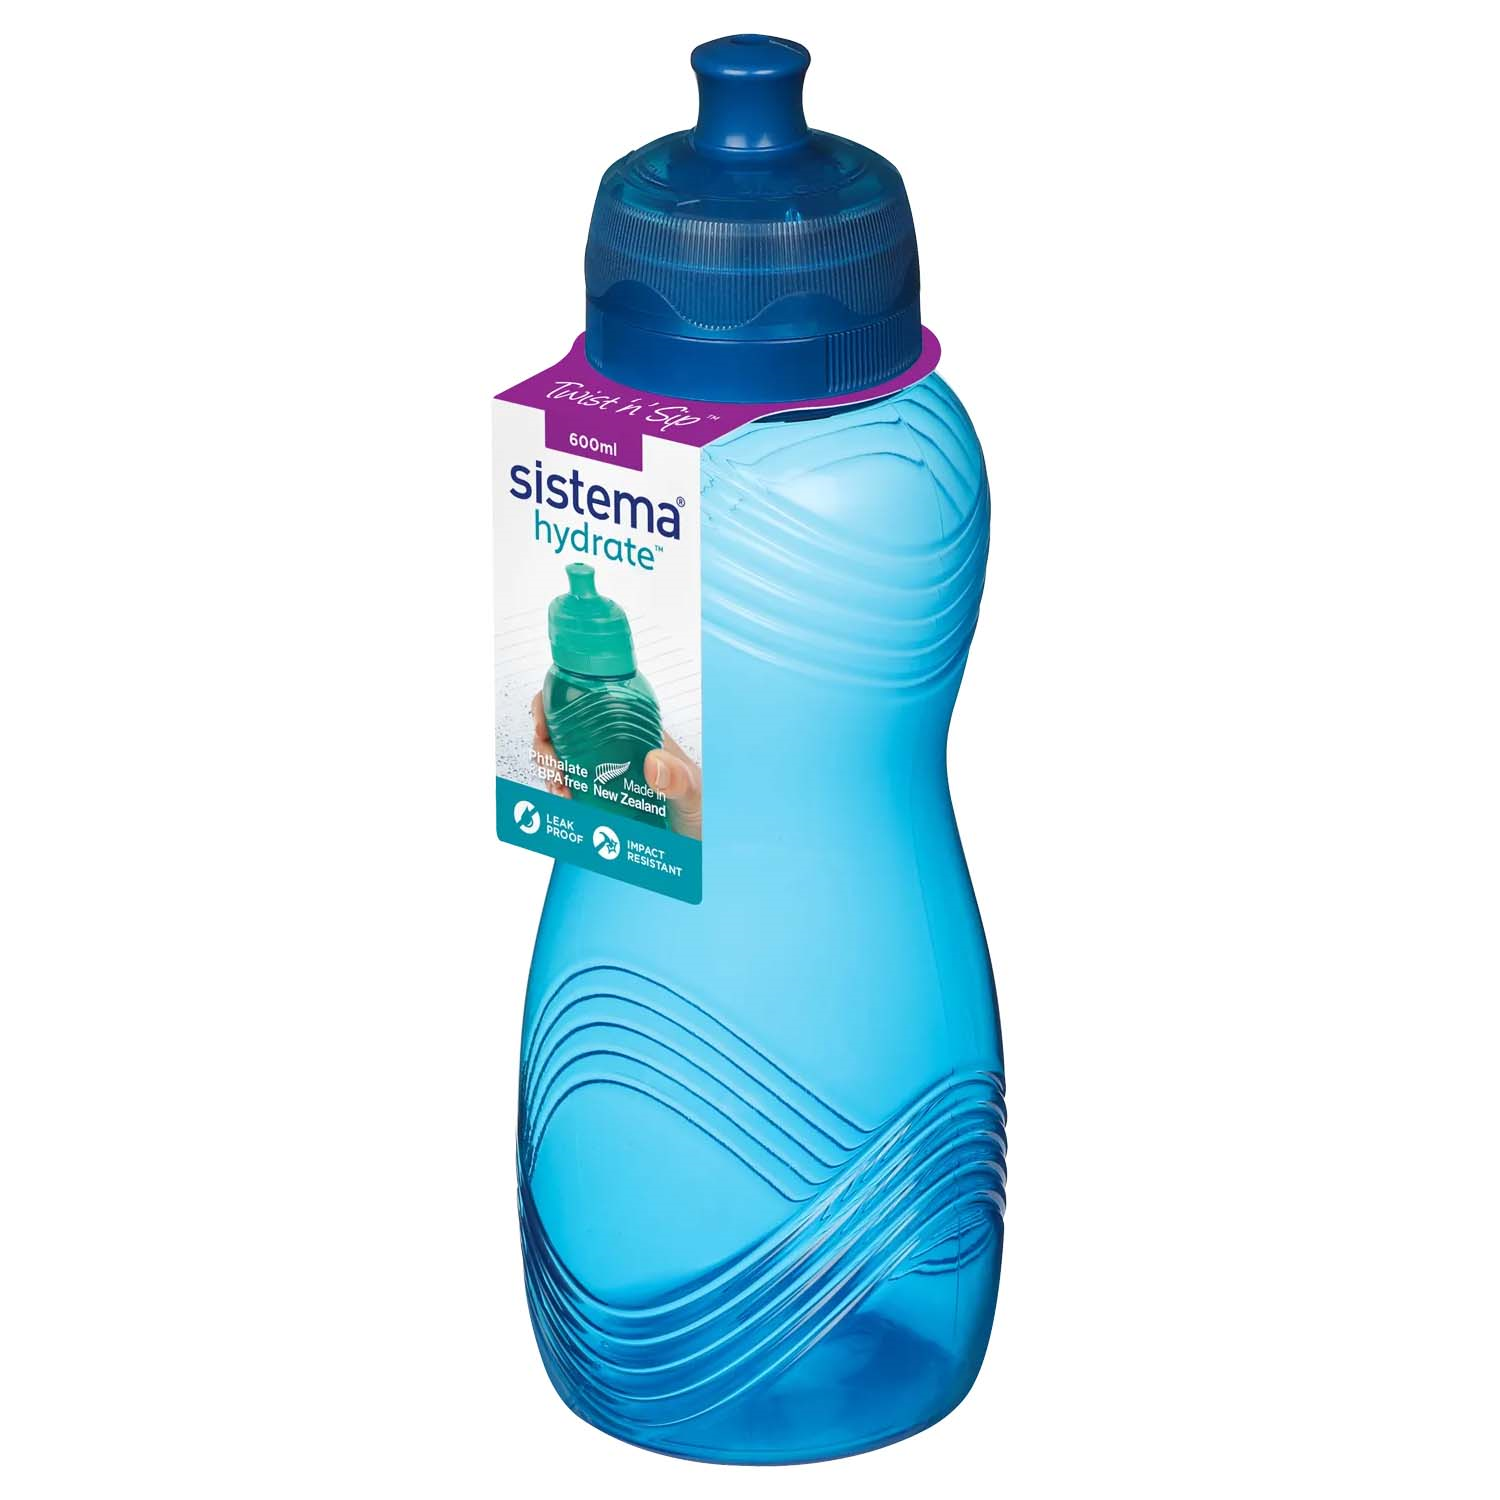 Sistema Wave Bottle 600ml Home Store More